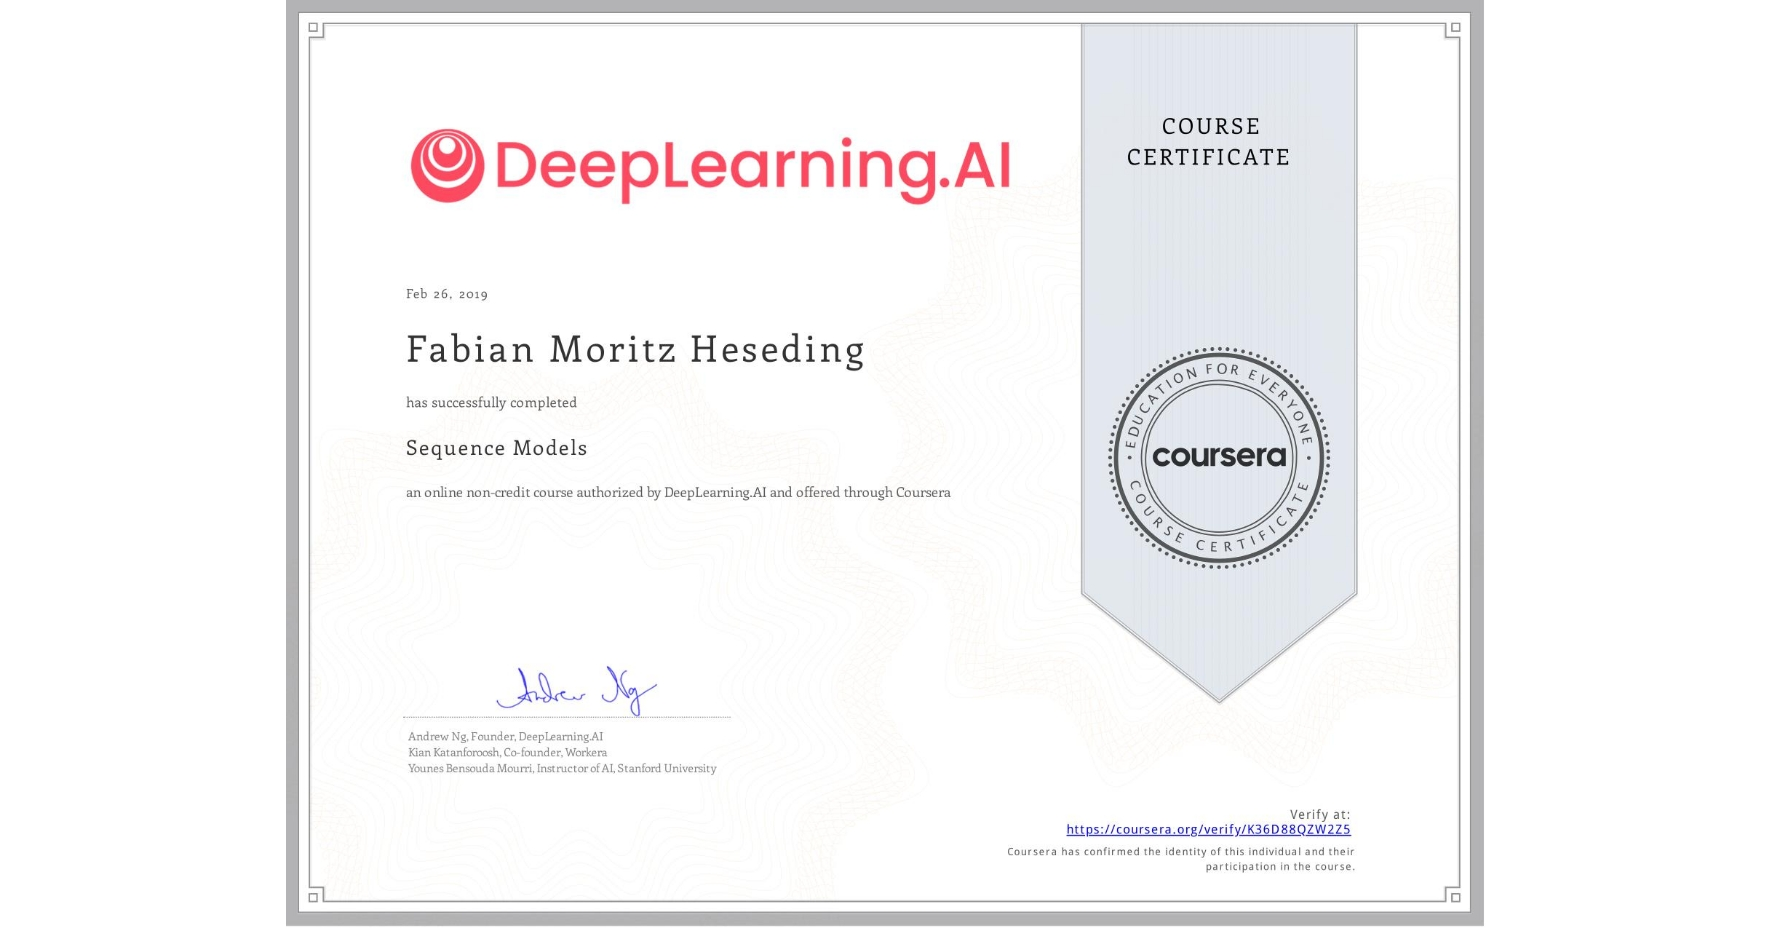 View certificate for Fabian Moritz Heseding, Sequence Models, an online non-credit course authorized by DeepLearning.AI and offered through Coursera